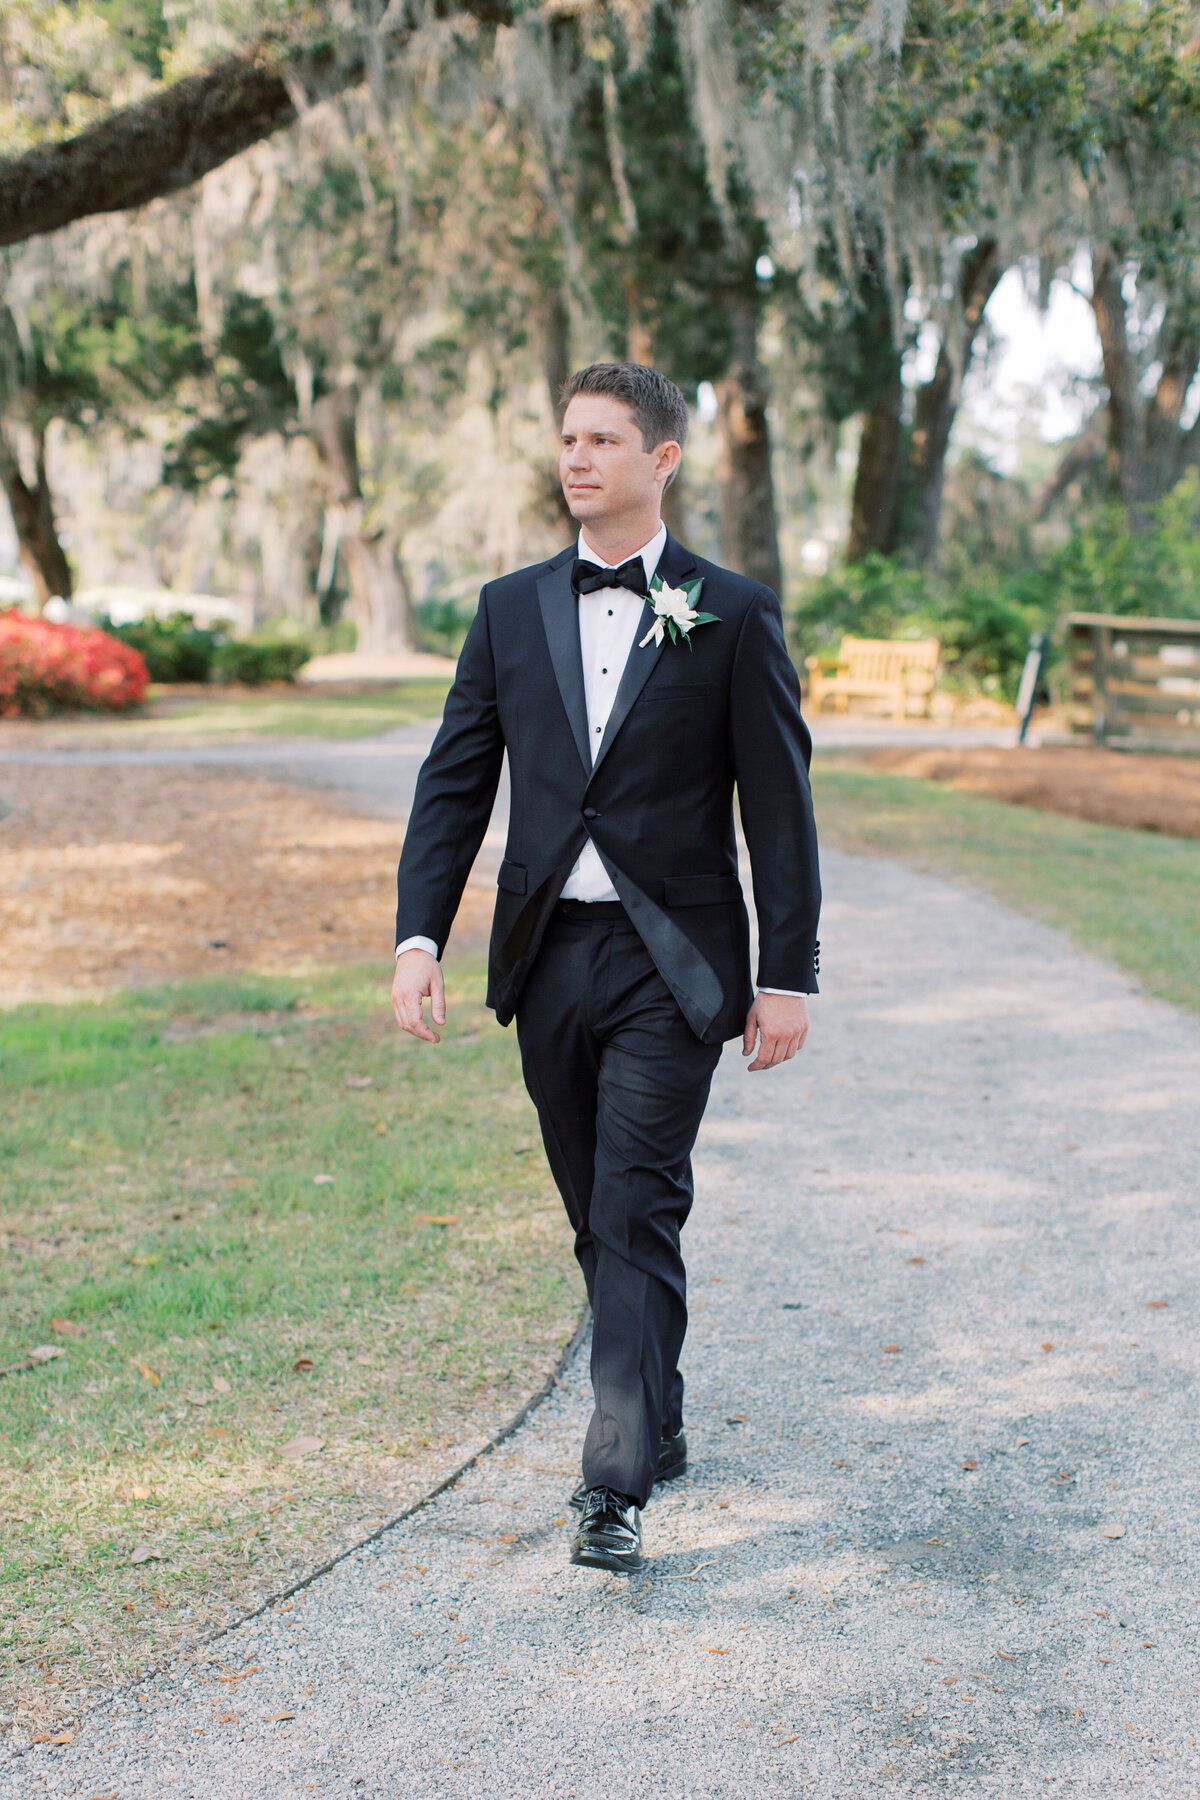 Powell_Oldfield_River_Club_Bluffton_South_Carolina_Beaufort_Savannah_Wedding_Jacksonville_Florida_Devon_Donnahoo_Photography_0338